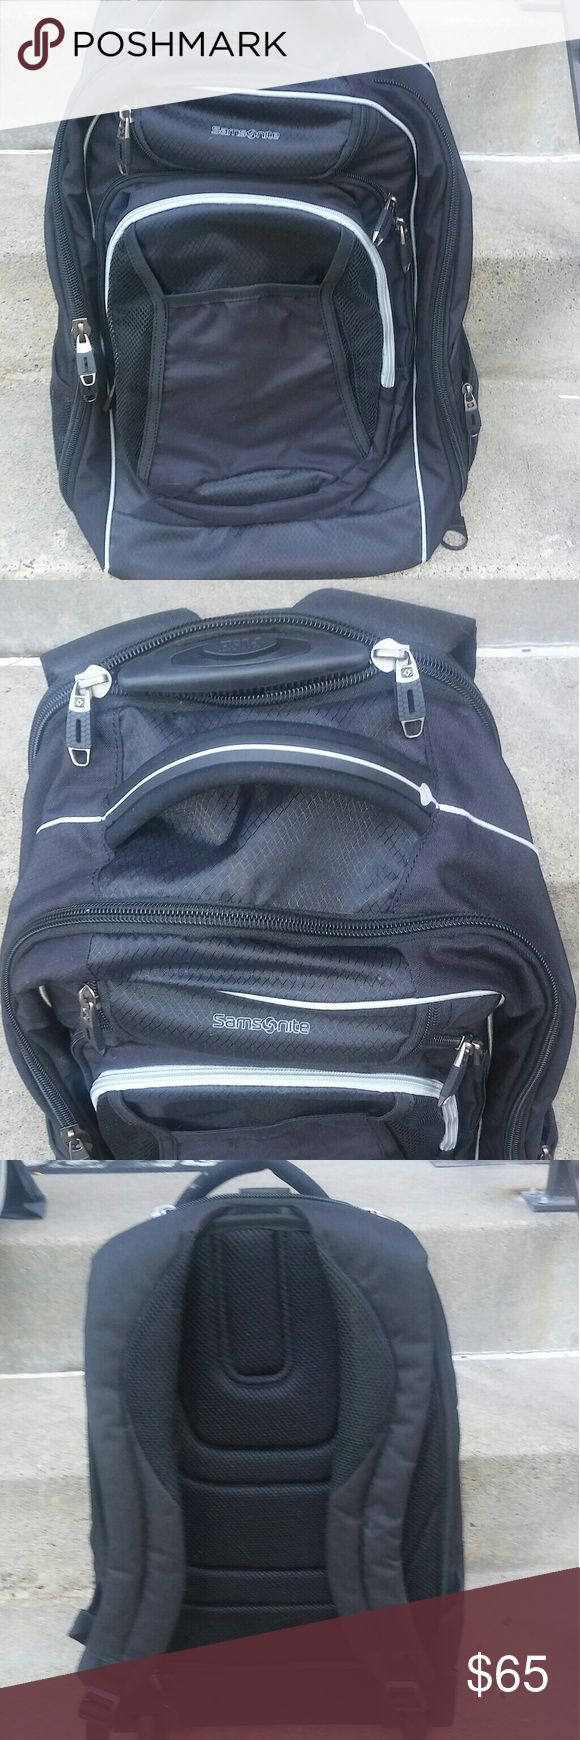 """Samsonite Tectonic wheeled Backpack 21"""" In great condition Samsonite backpack Flaws the extra strap have been worn from the wheels (pictured) Lightning Speed Shipping Thanks for looking:-) Let me know if you have any questions. Samsonite Bags Backpacks"""